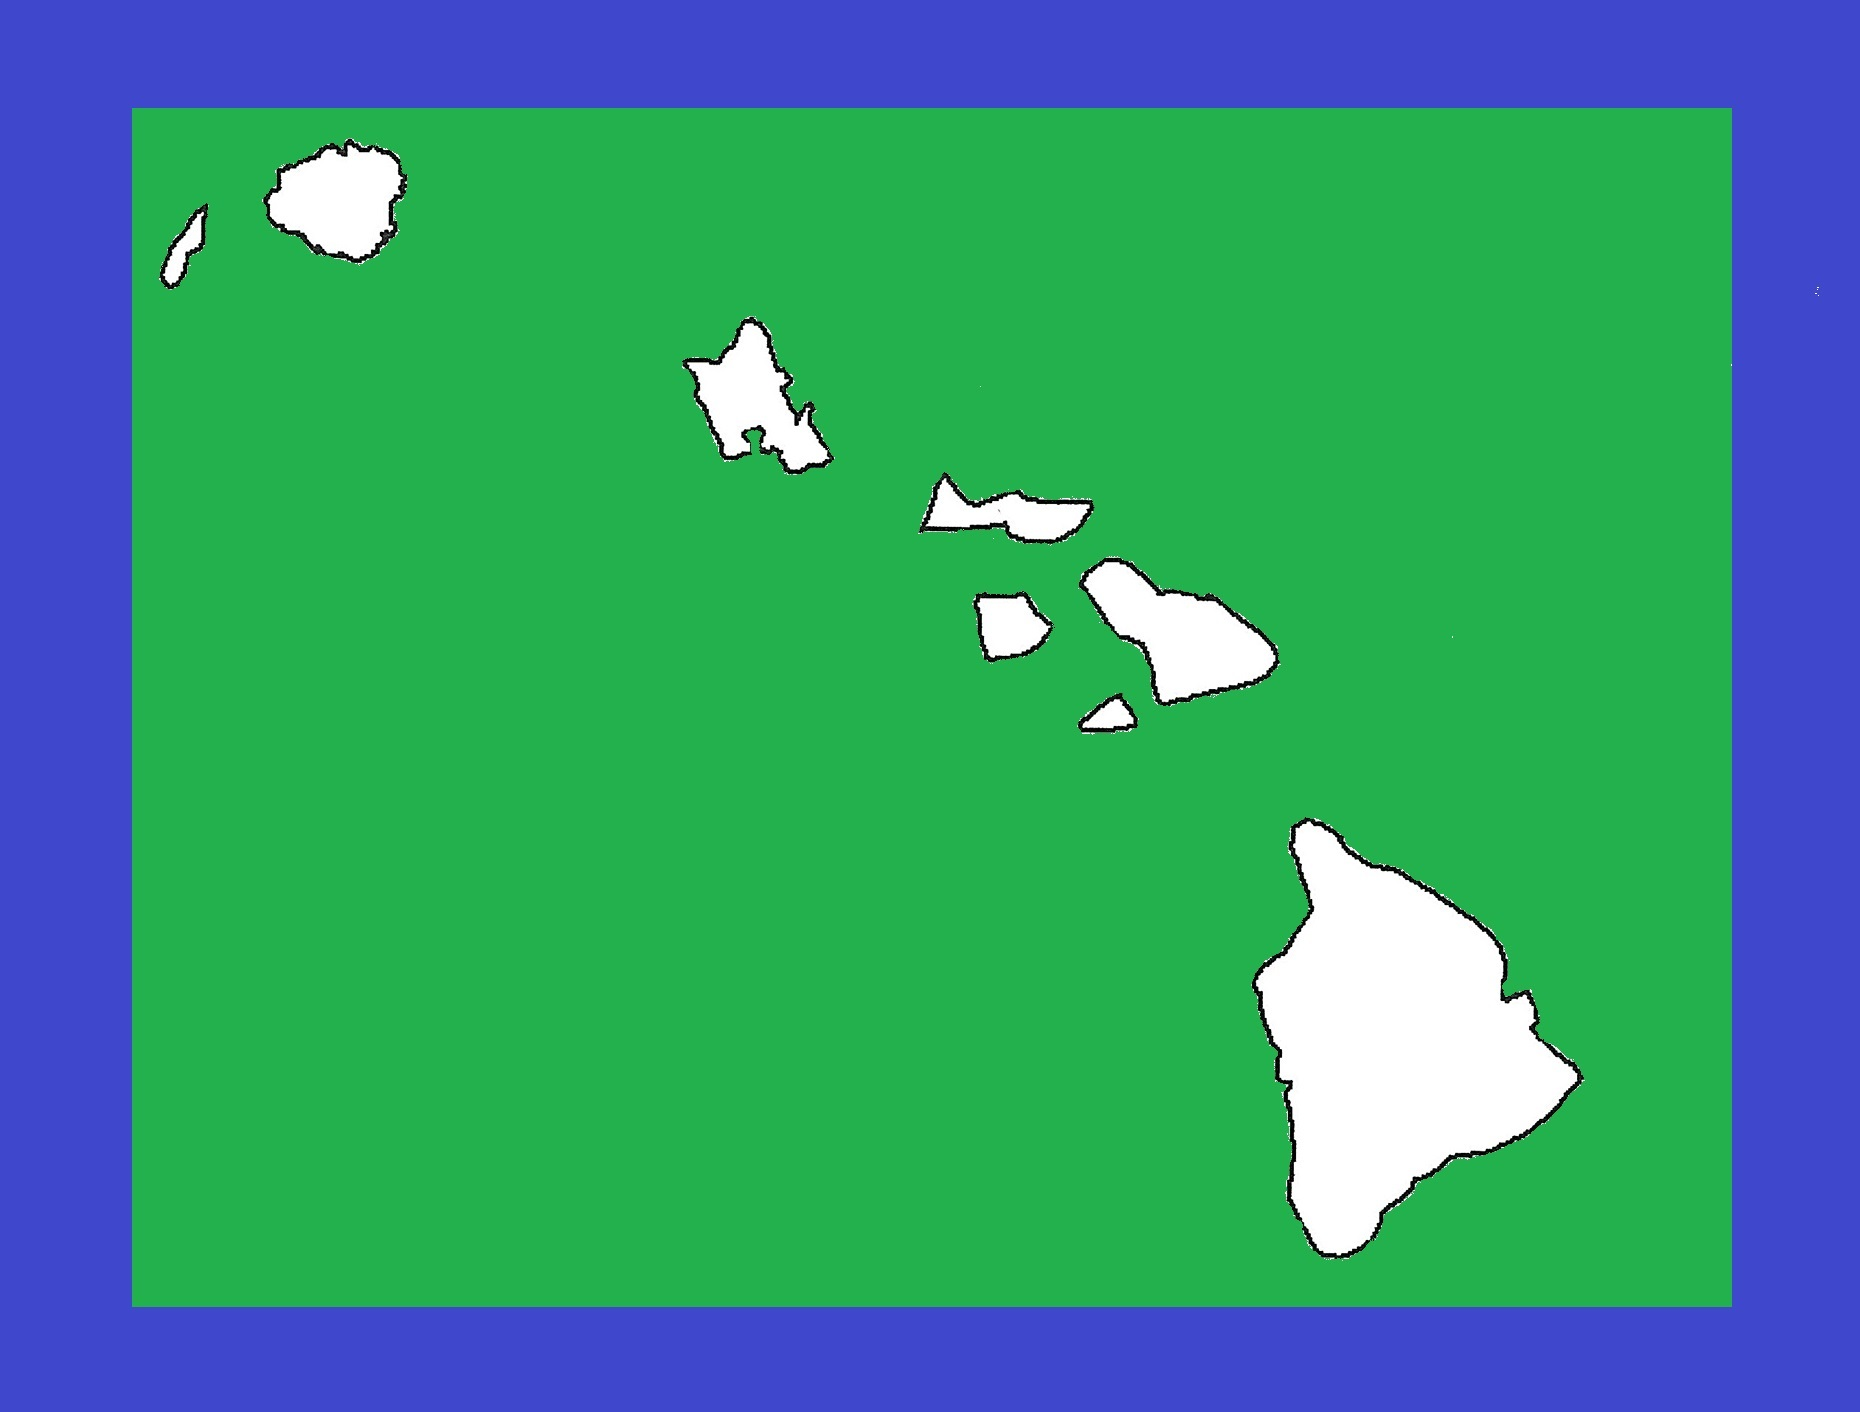 Hawaii Blank Outline Map | Large Printable and Standard Map 9